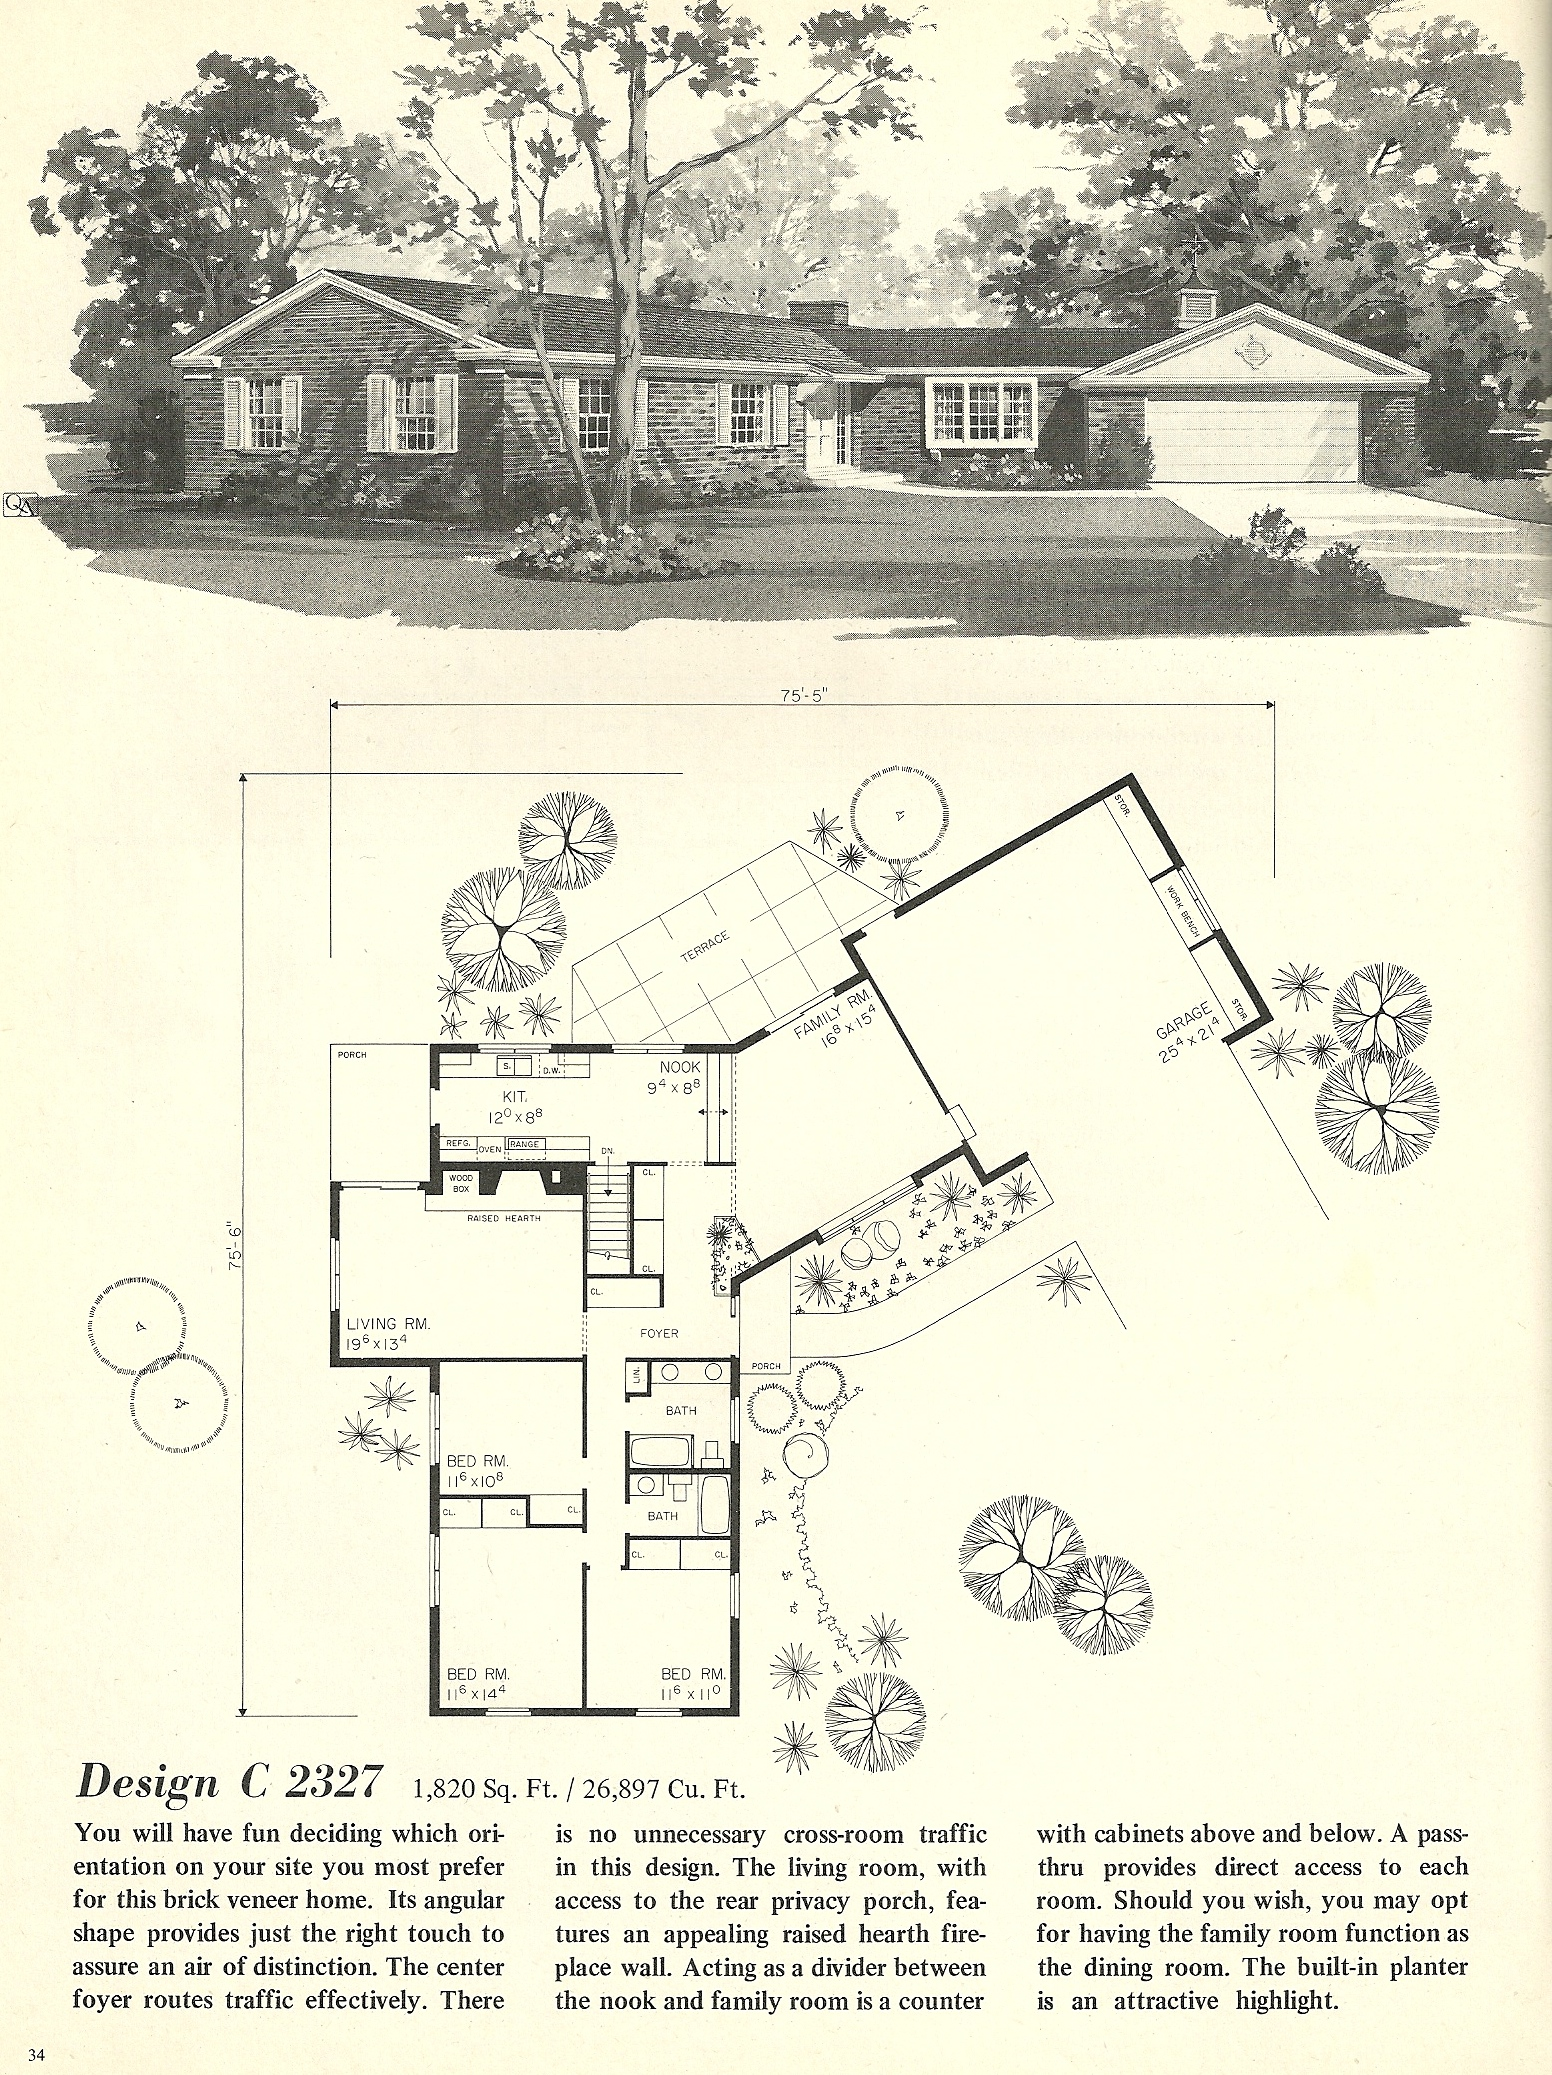 vintage house plans 2327 antique alter ego